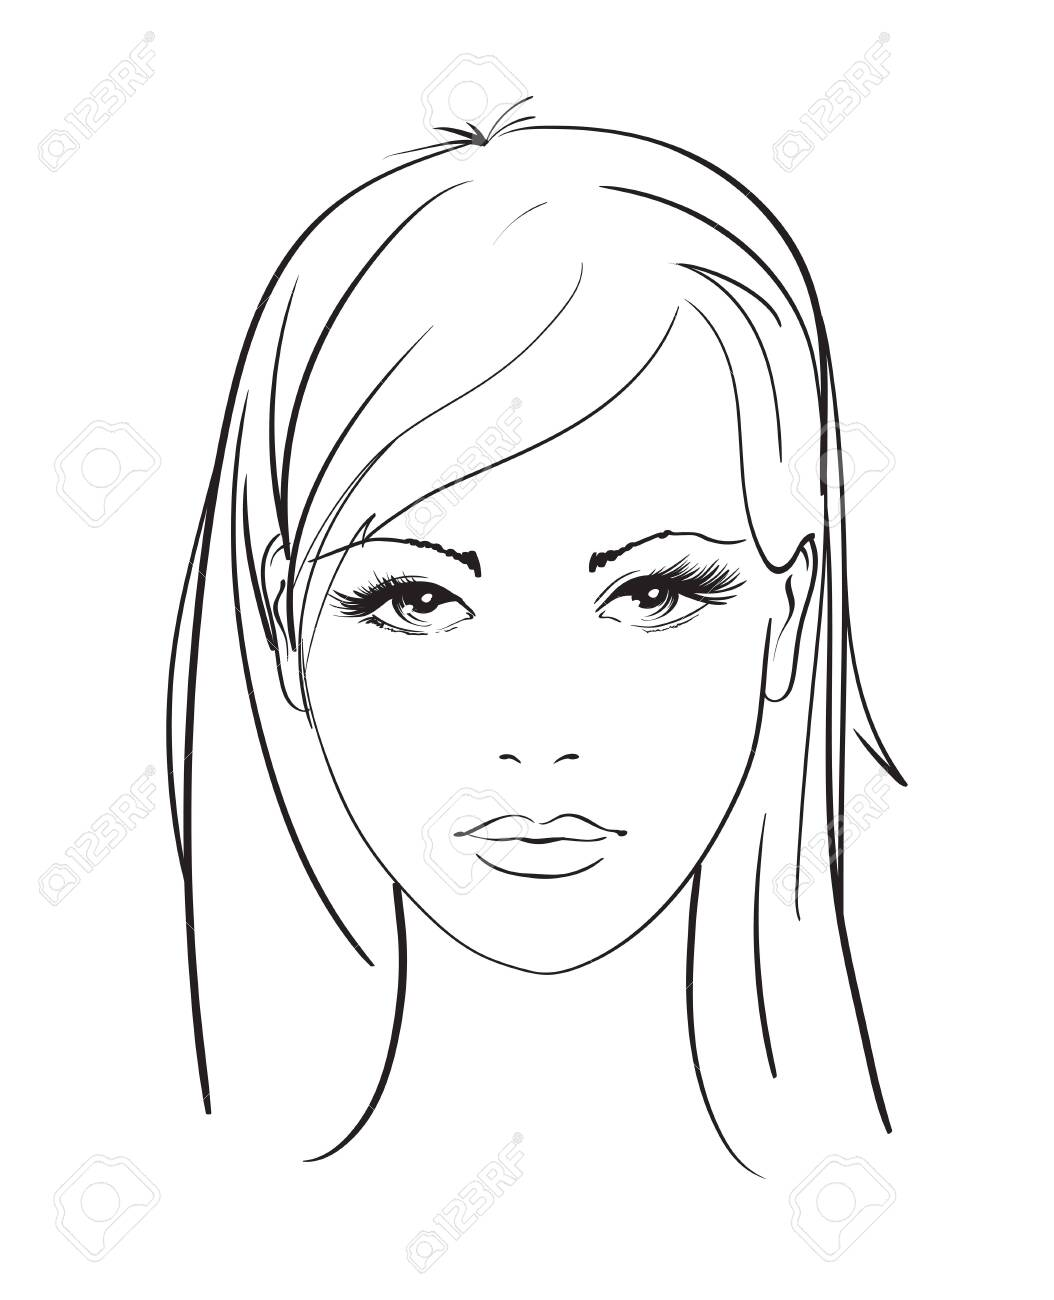 Beautiful Young Woman With Hairstyle And Expressive Look Fashion Royalty Free Cliparts Vectors And Stock Illustration Image 125840636